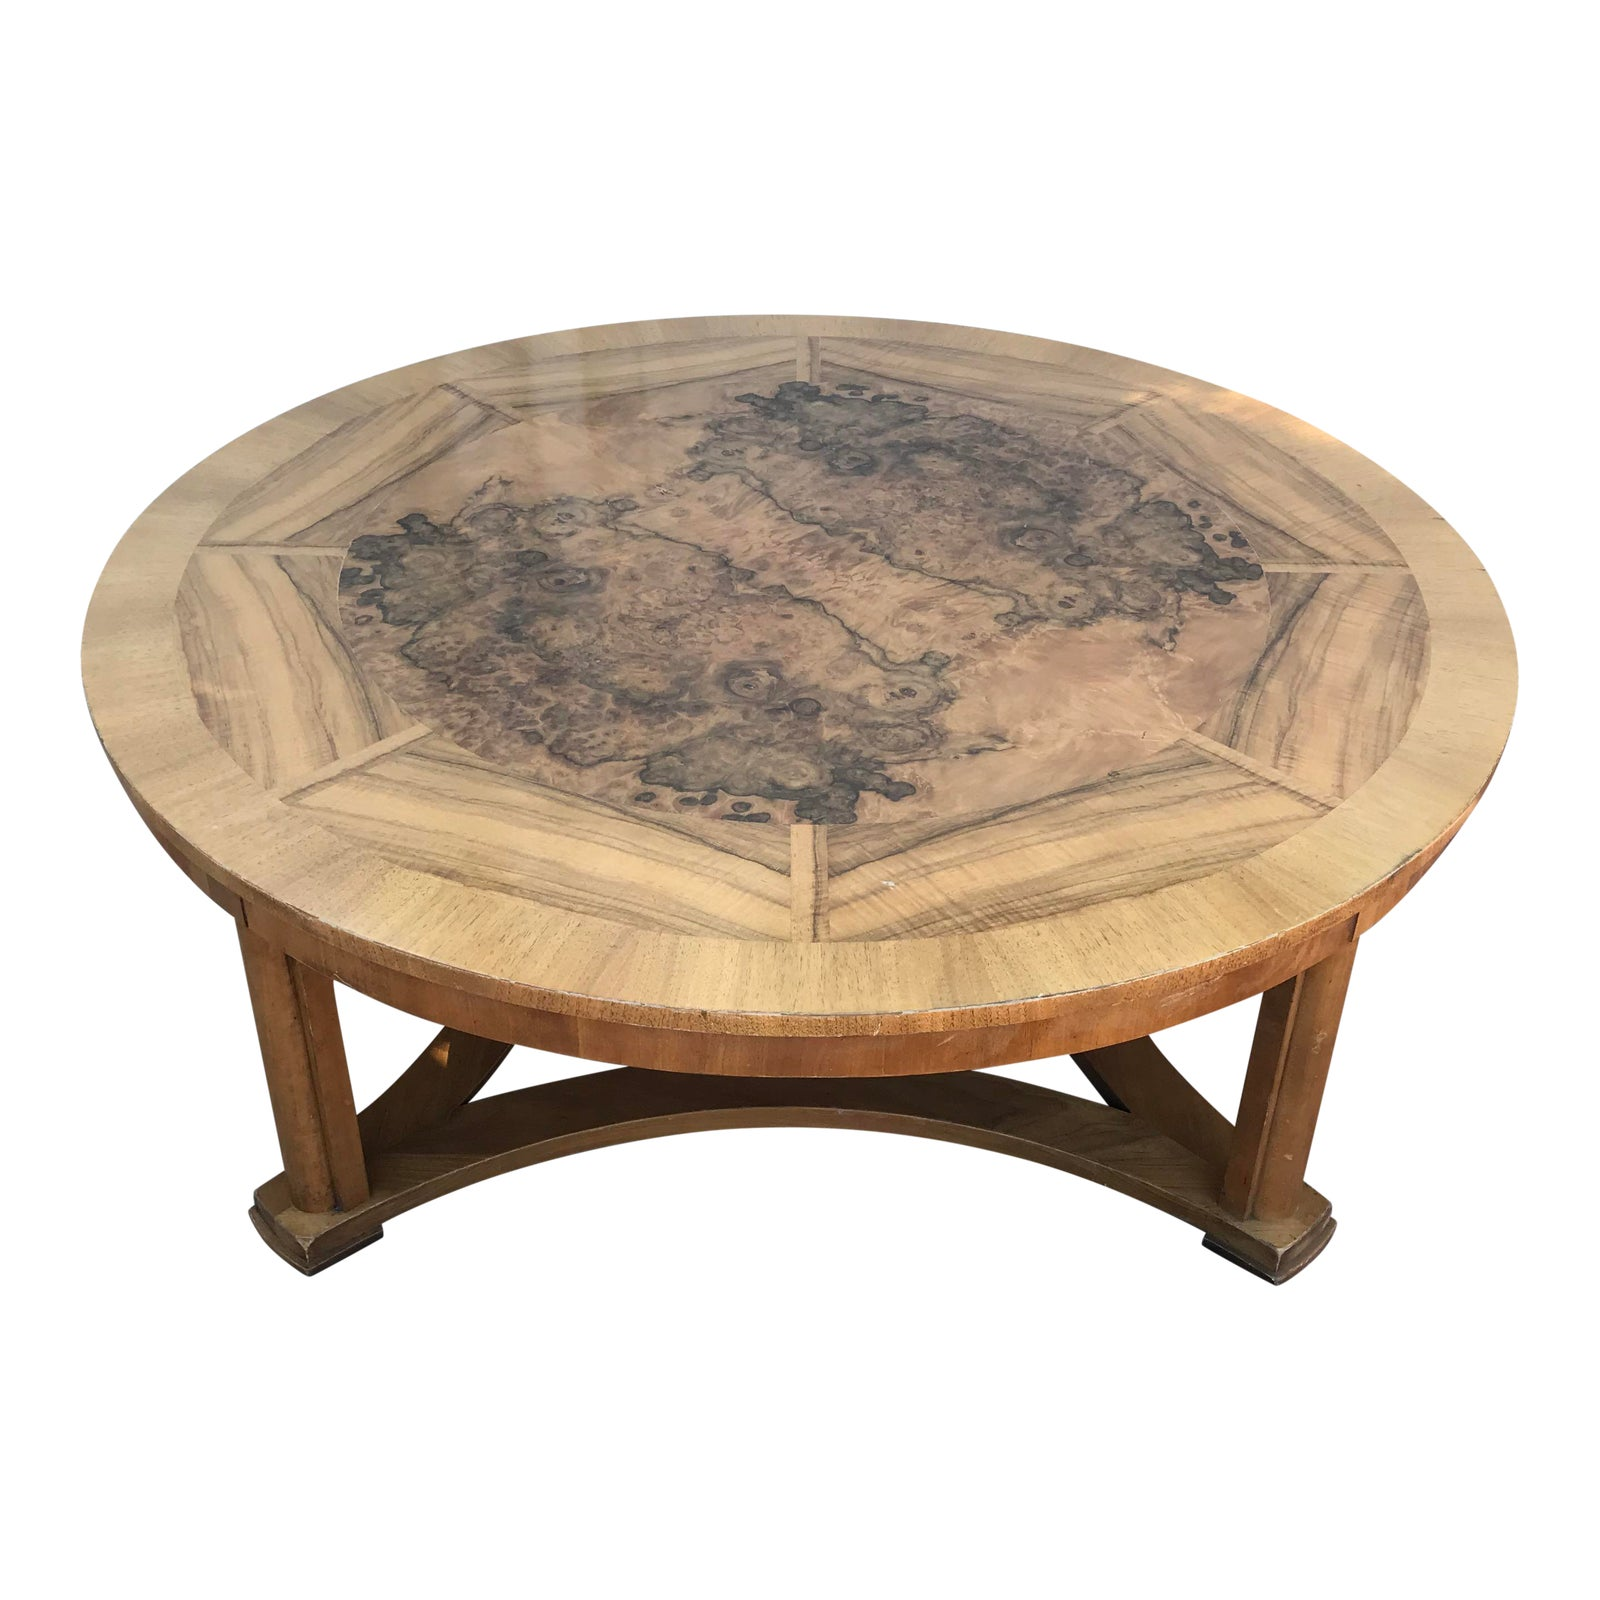 Vintage round burl wood coffee table by baker furniture chairish